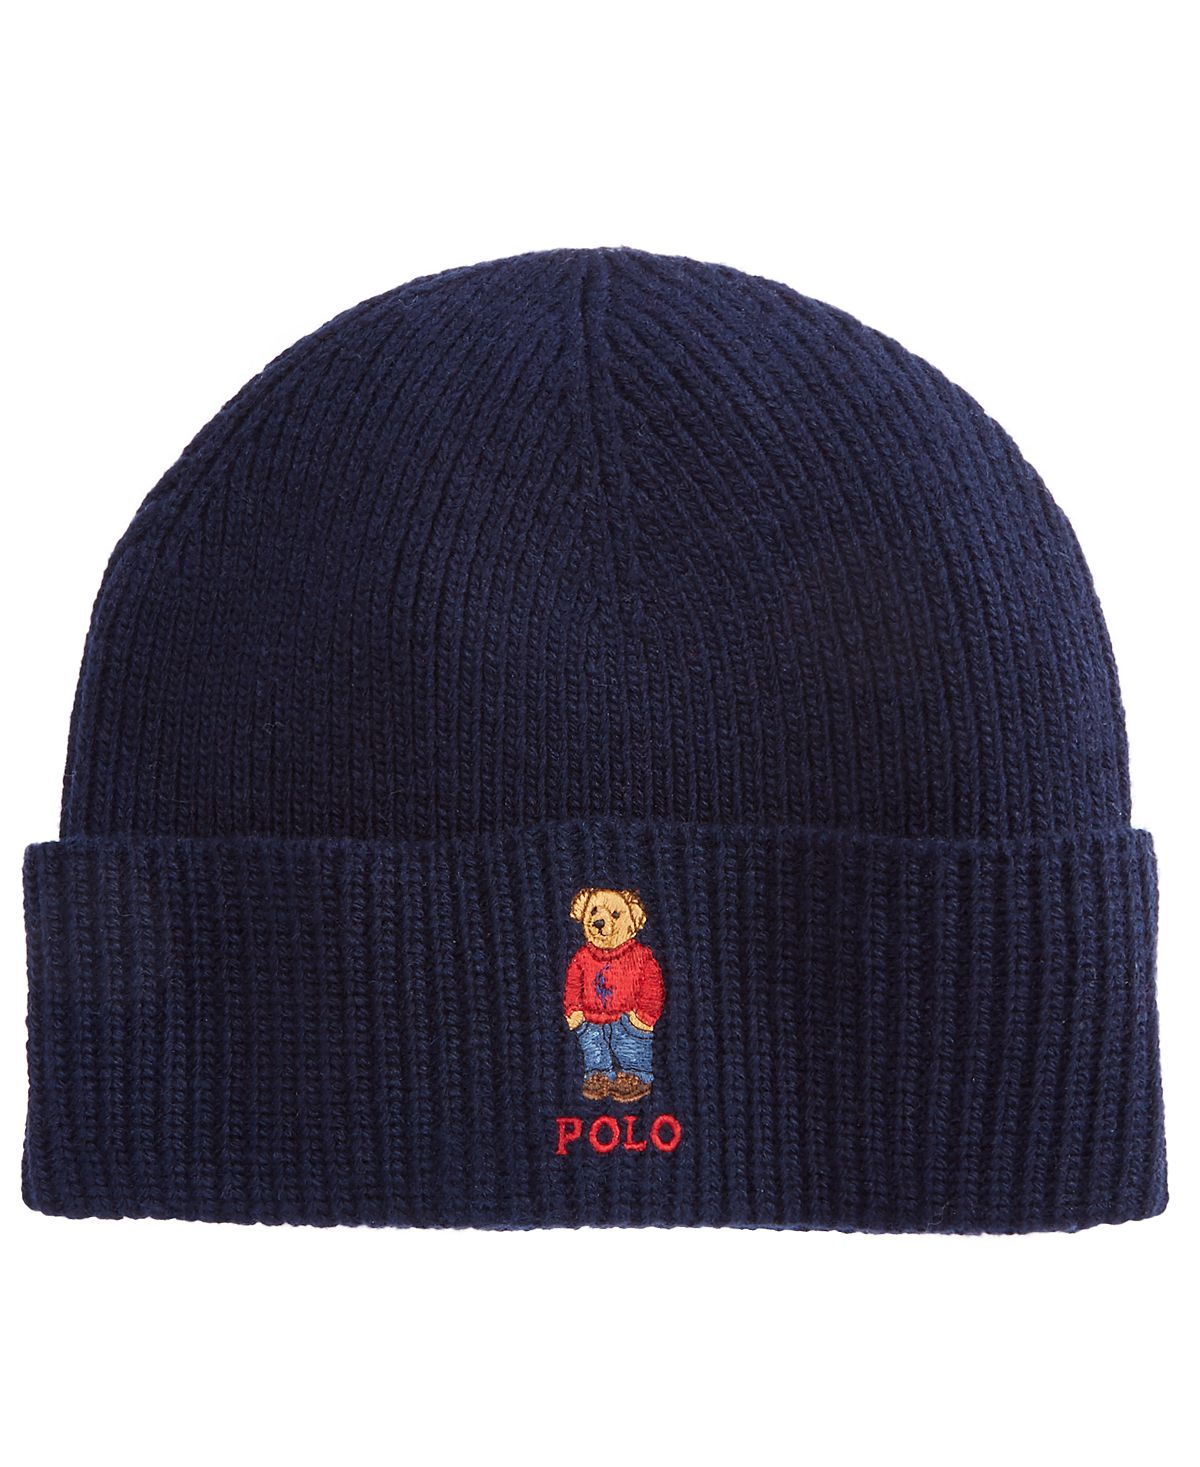 Polo Ralph Lauren Bear Cold Weather Cuff Hat Navy